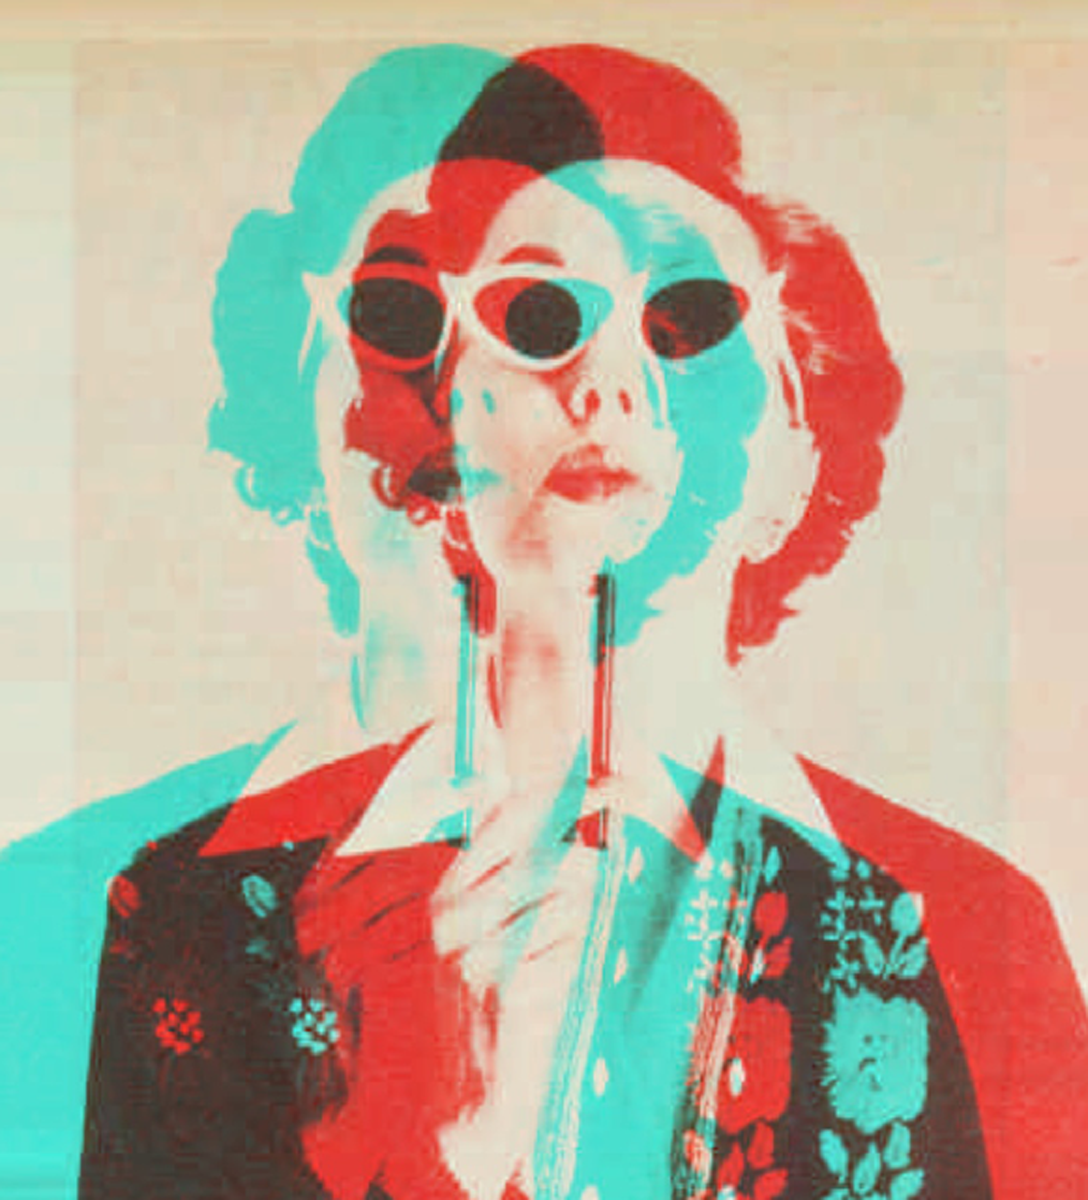 A tricolour, pop art style image of a 1950s lady, thoughtfully holding pen to chin.